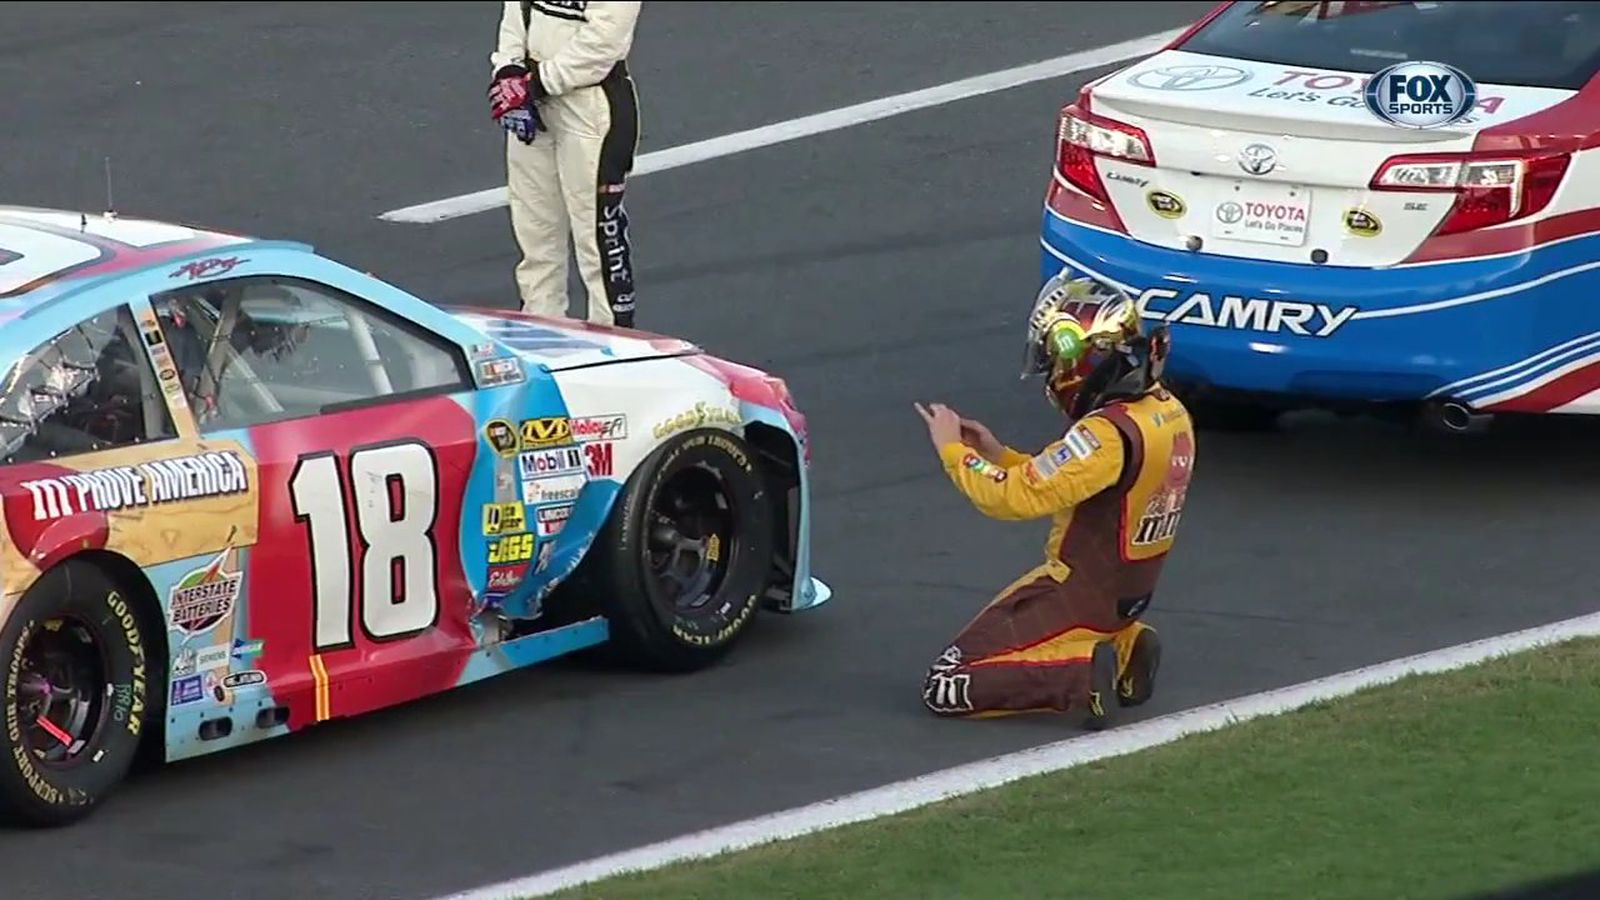 Nascar Charlotte 2013 Fans Injured When Tv Cable Snaps